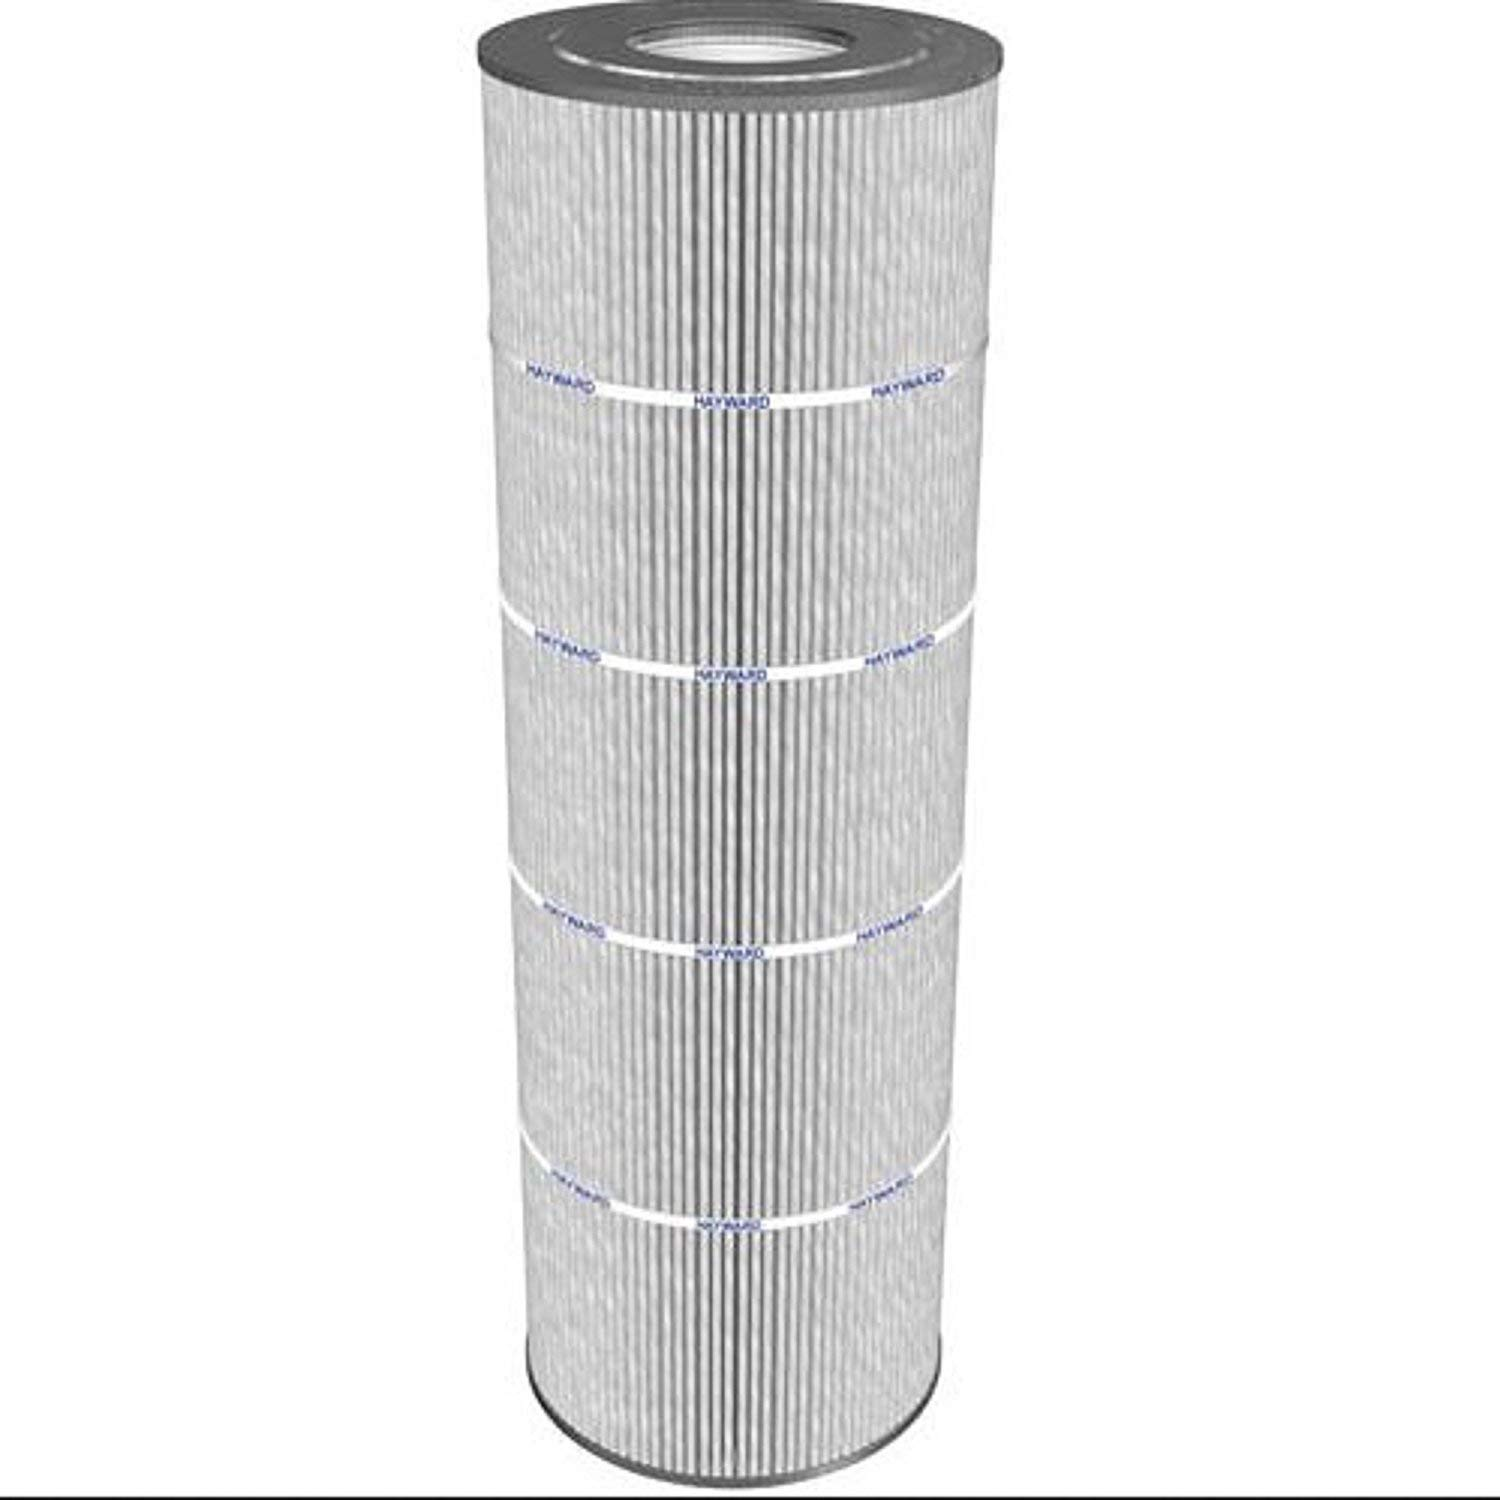 Amazon.com : Hayward CCX1500RE (CC 1500 E) Replacement Pool Filter Cartridge  Elements, 150-Square-Foot : Swimming Pool Cartridge Filters : Garden &  Outdoor